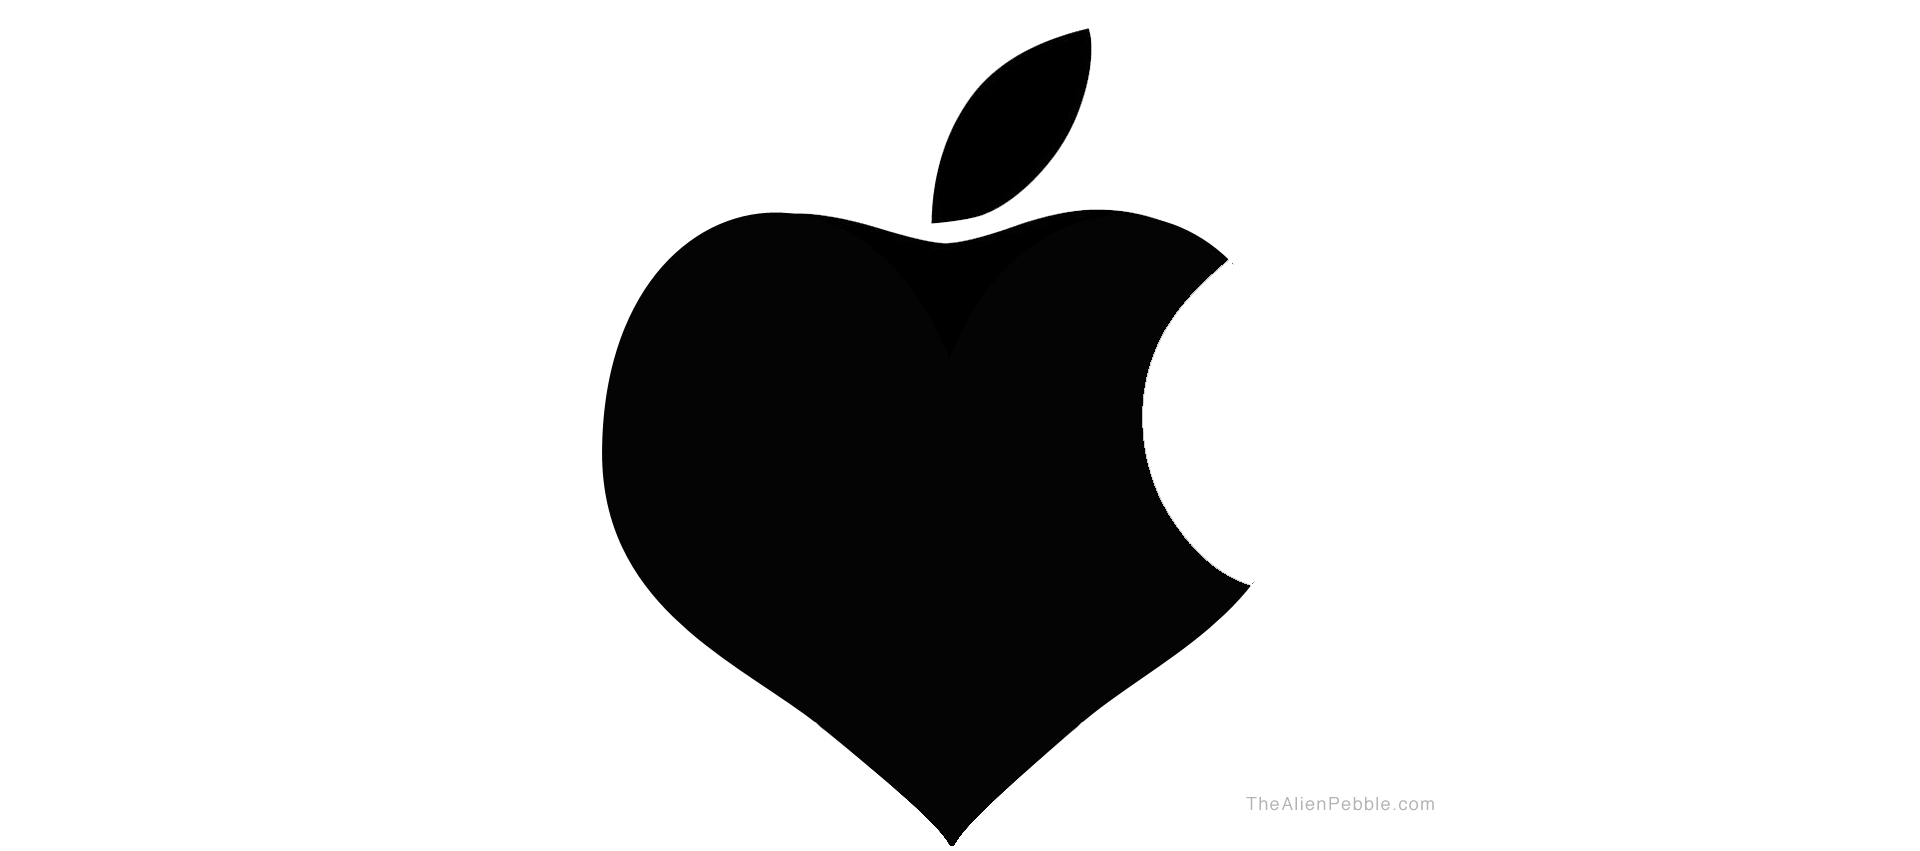 TheAlienPebble Apple Heart.jpg